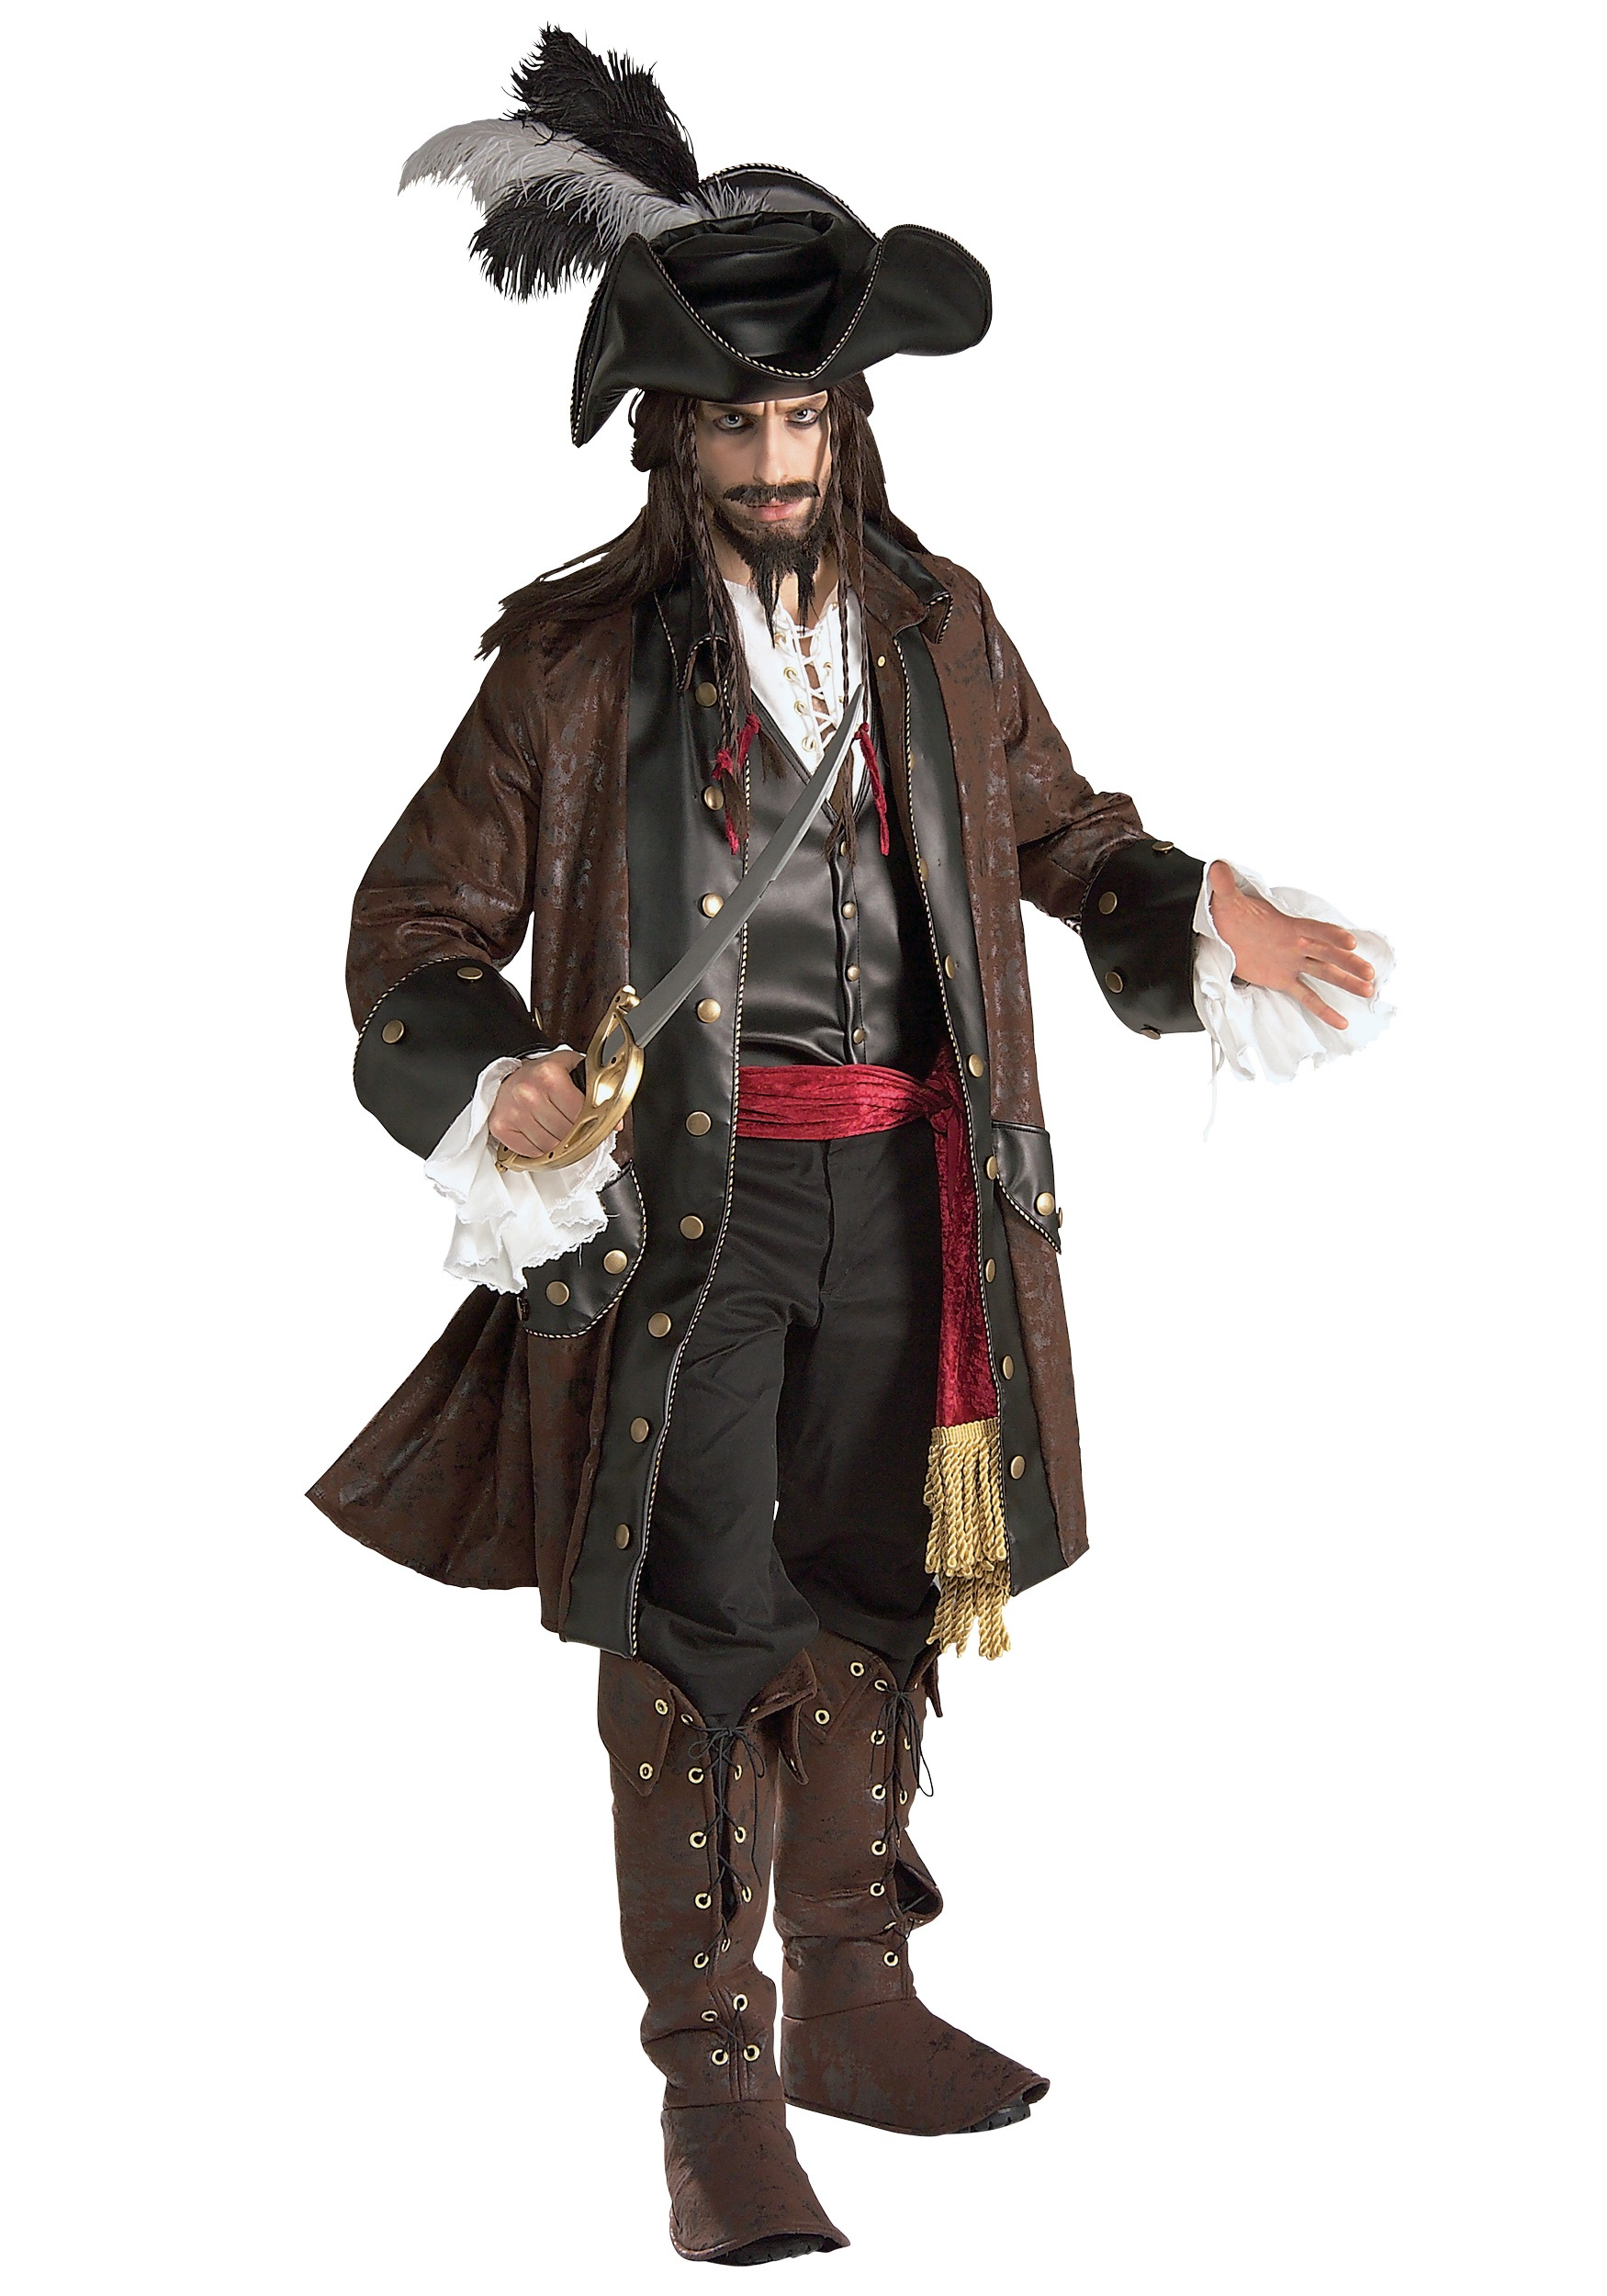 Authentic Pirate Costume - Deluxe Mens Adult Caribbean Pirate Costumes 9a53757f2ec4